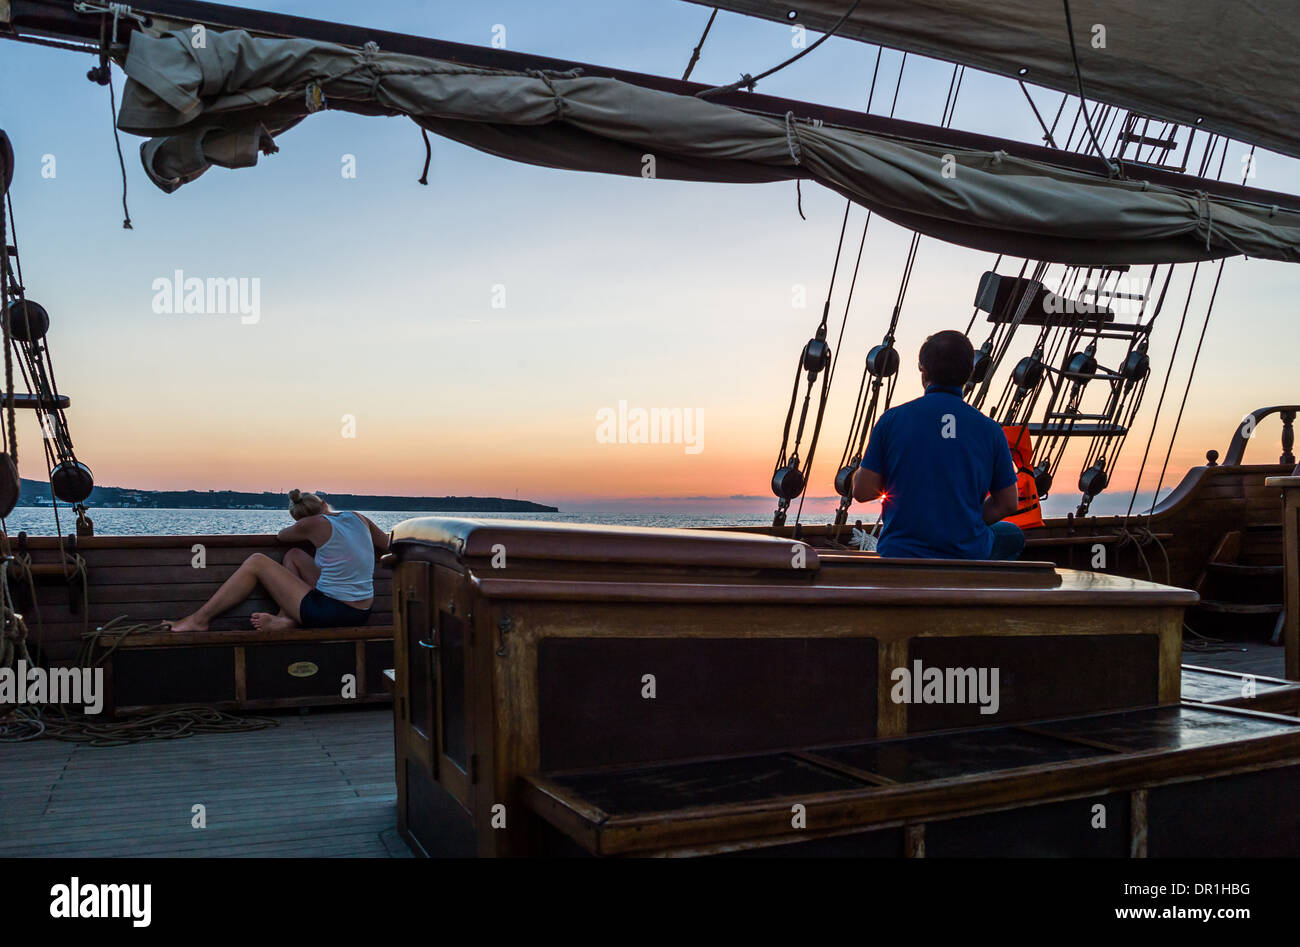 Greece, Santorini, people relaxing on a Brigantine in navigation in the Caldera sea area - Stock Image